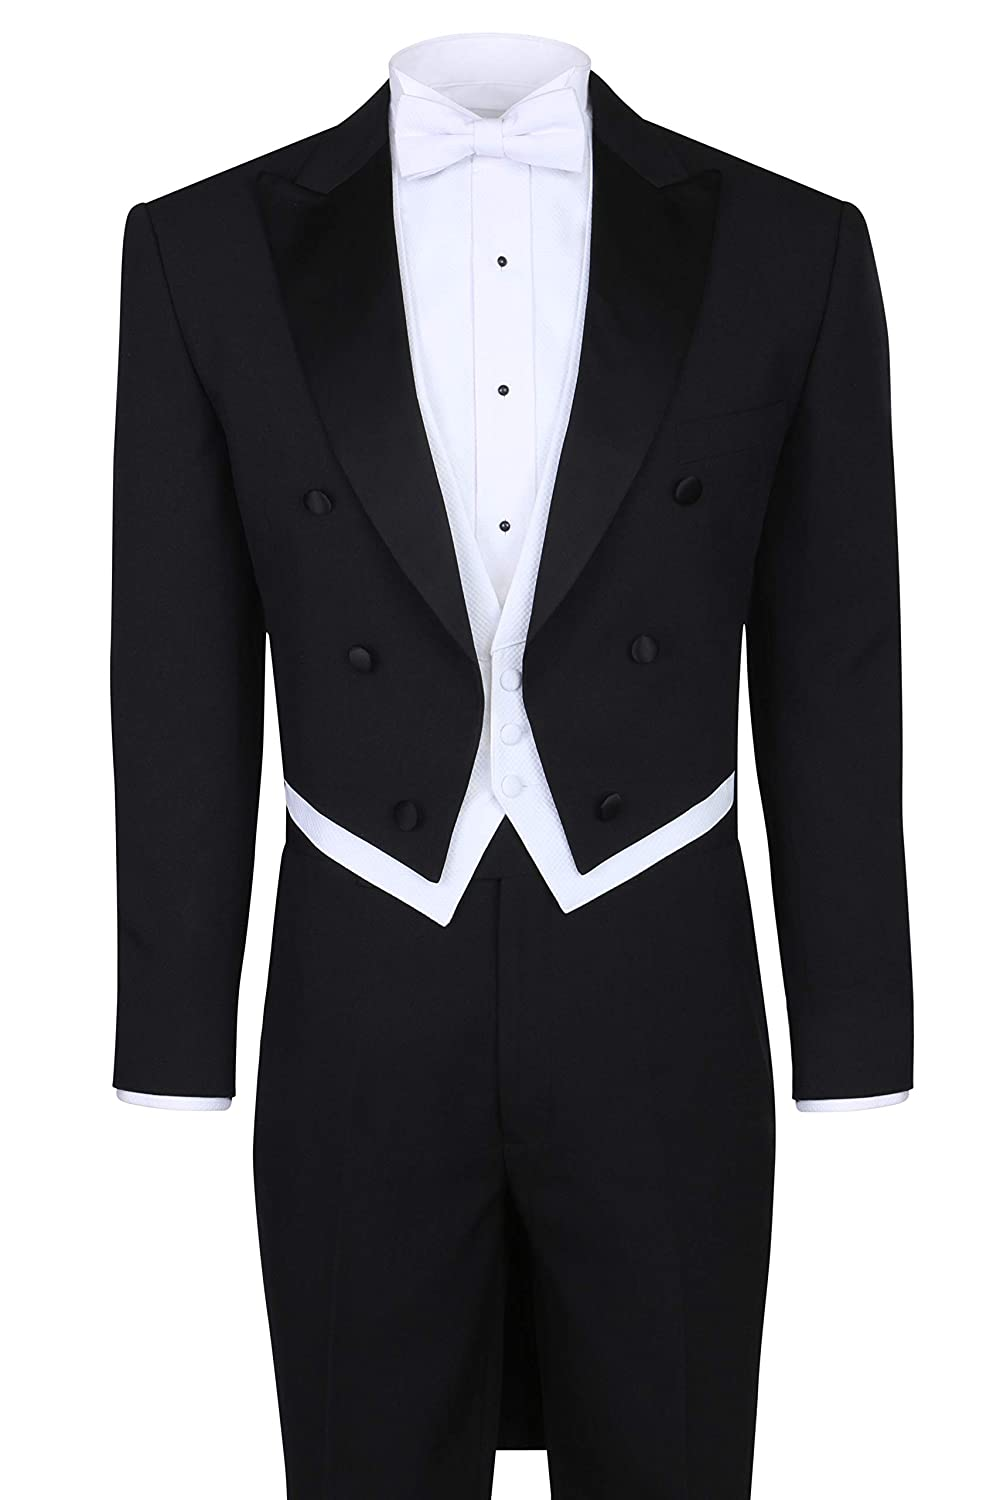 Victorian Men's Tuxedo, Tailcoats, Formalwear Guide Mens Tuxedo Tails - Tailcoat and Trousers Available in Black or White $130.65 AT vintagedancer.com